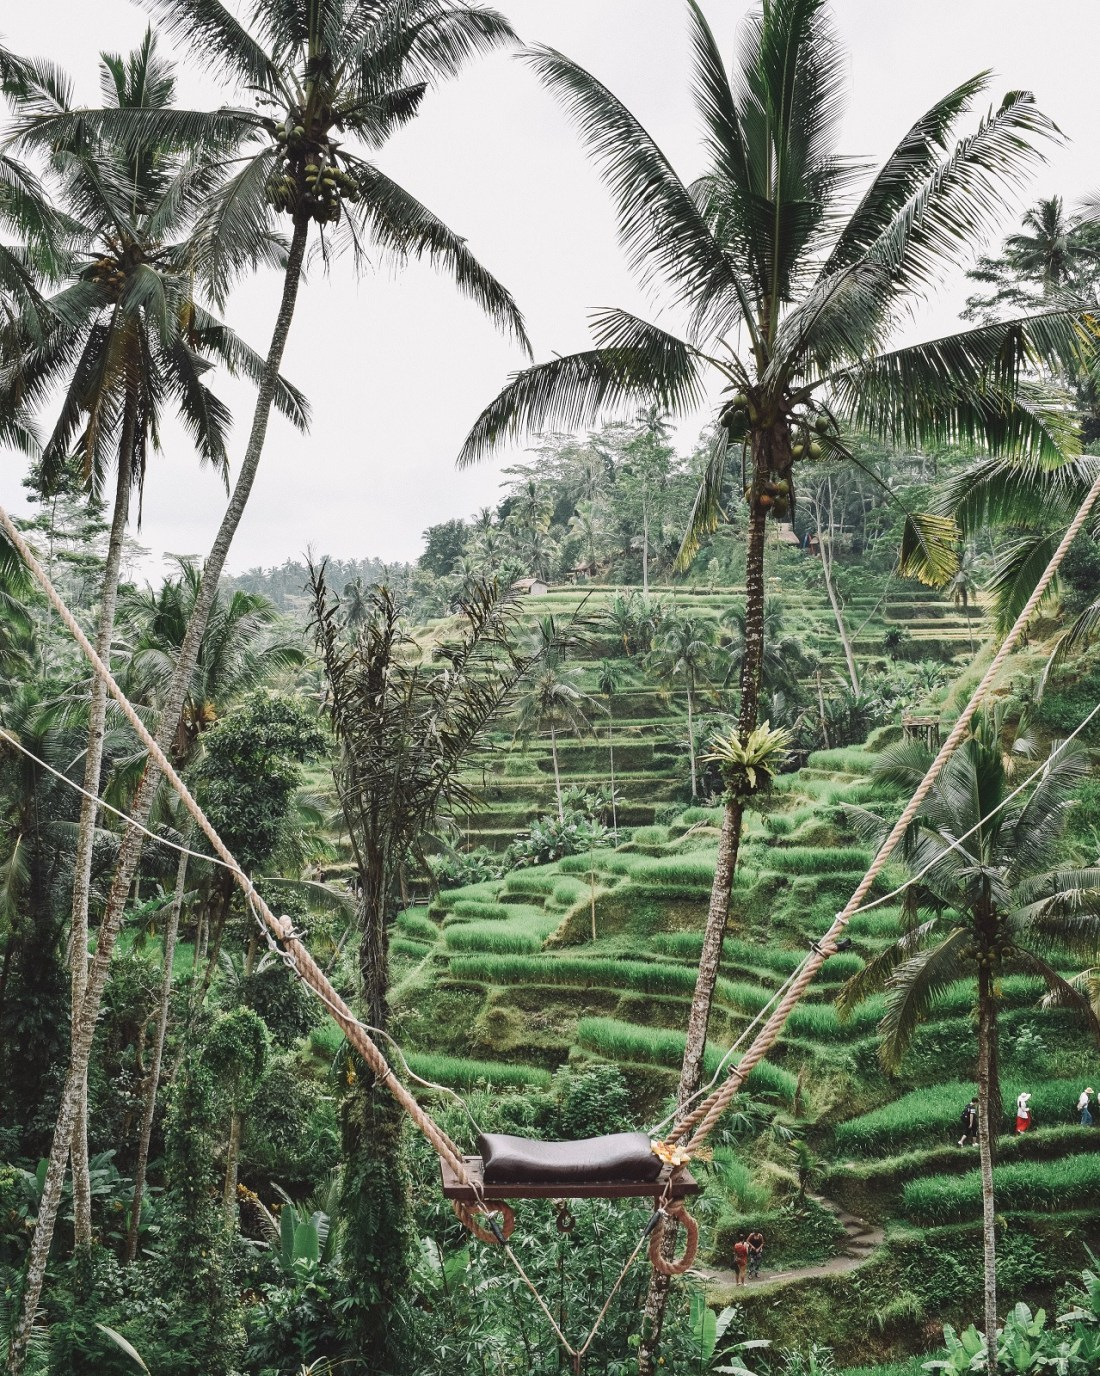 Swing in Bali Mountains with Rice Paddies